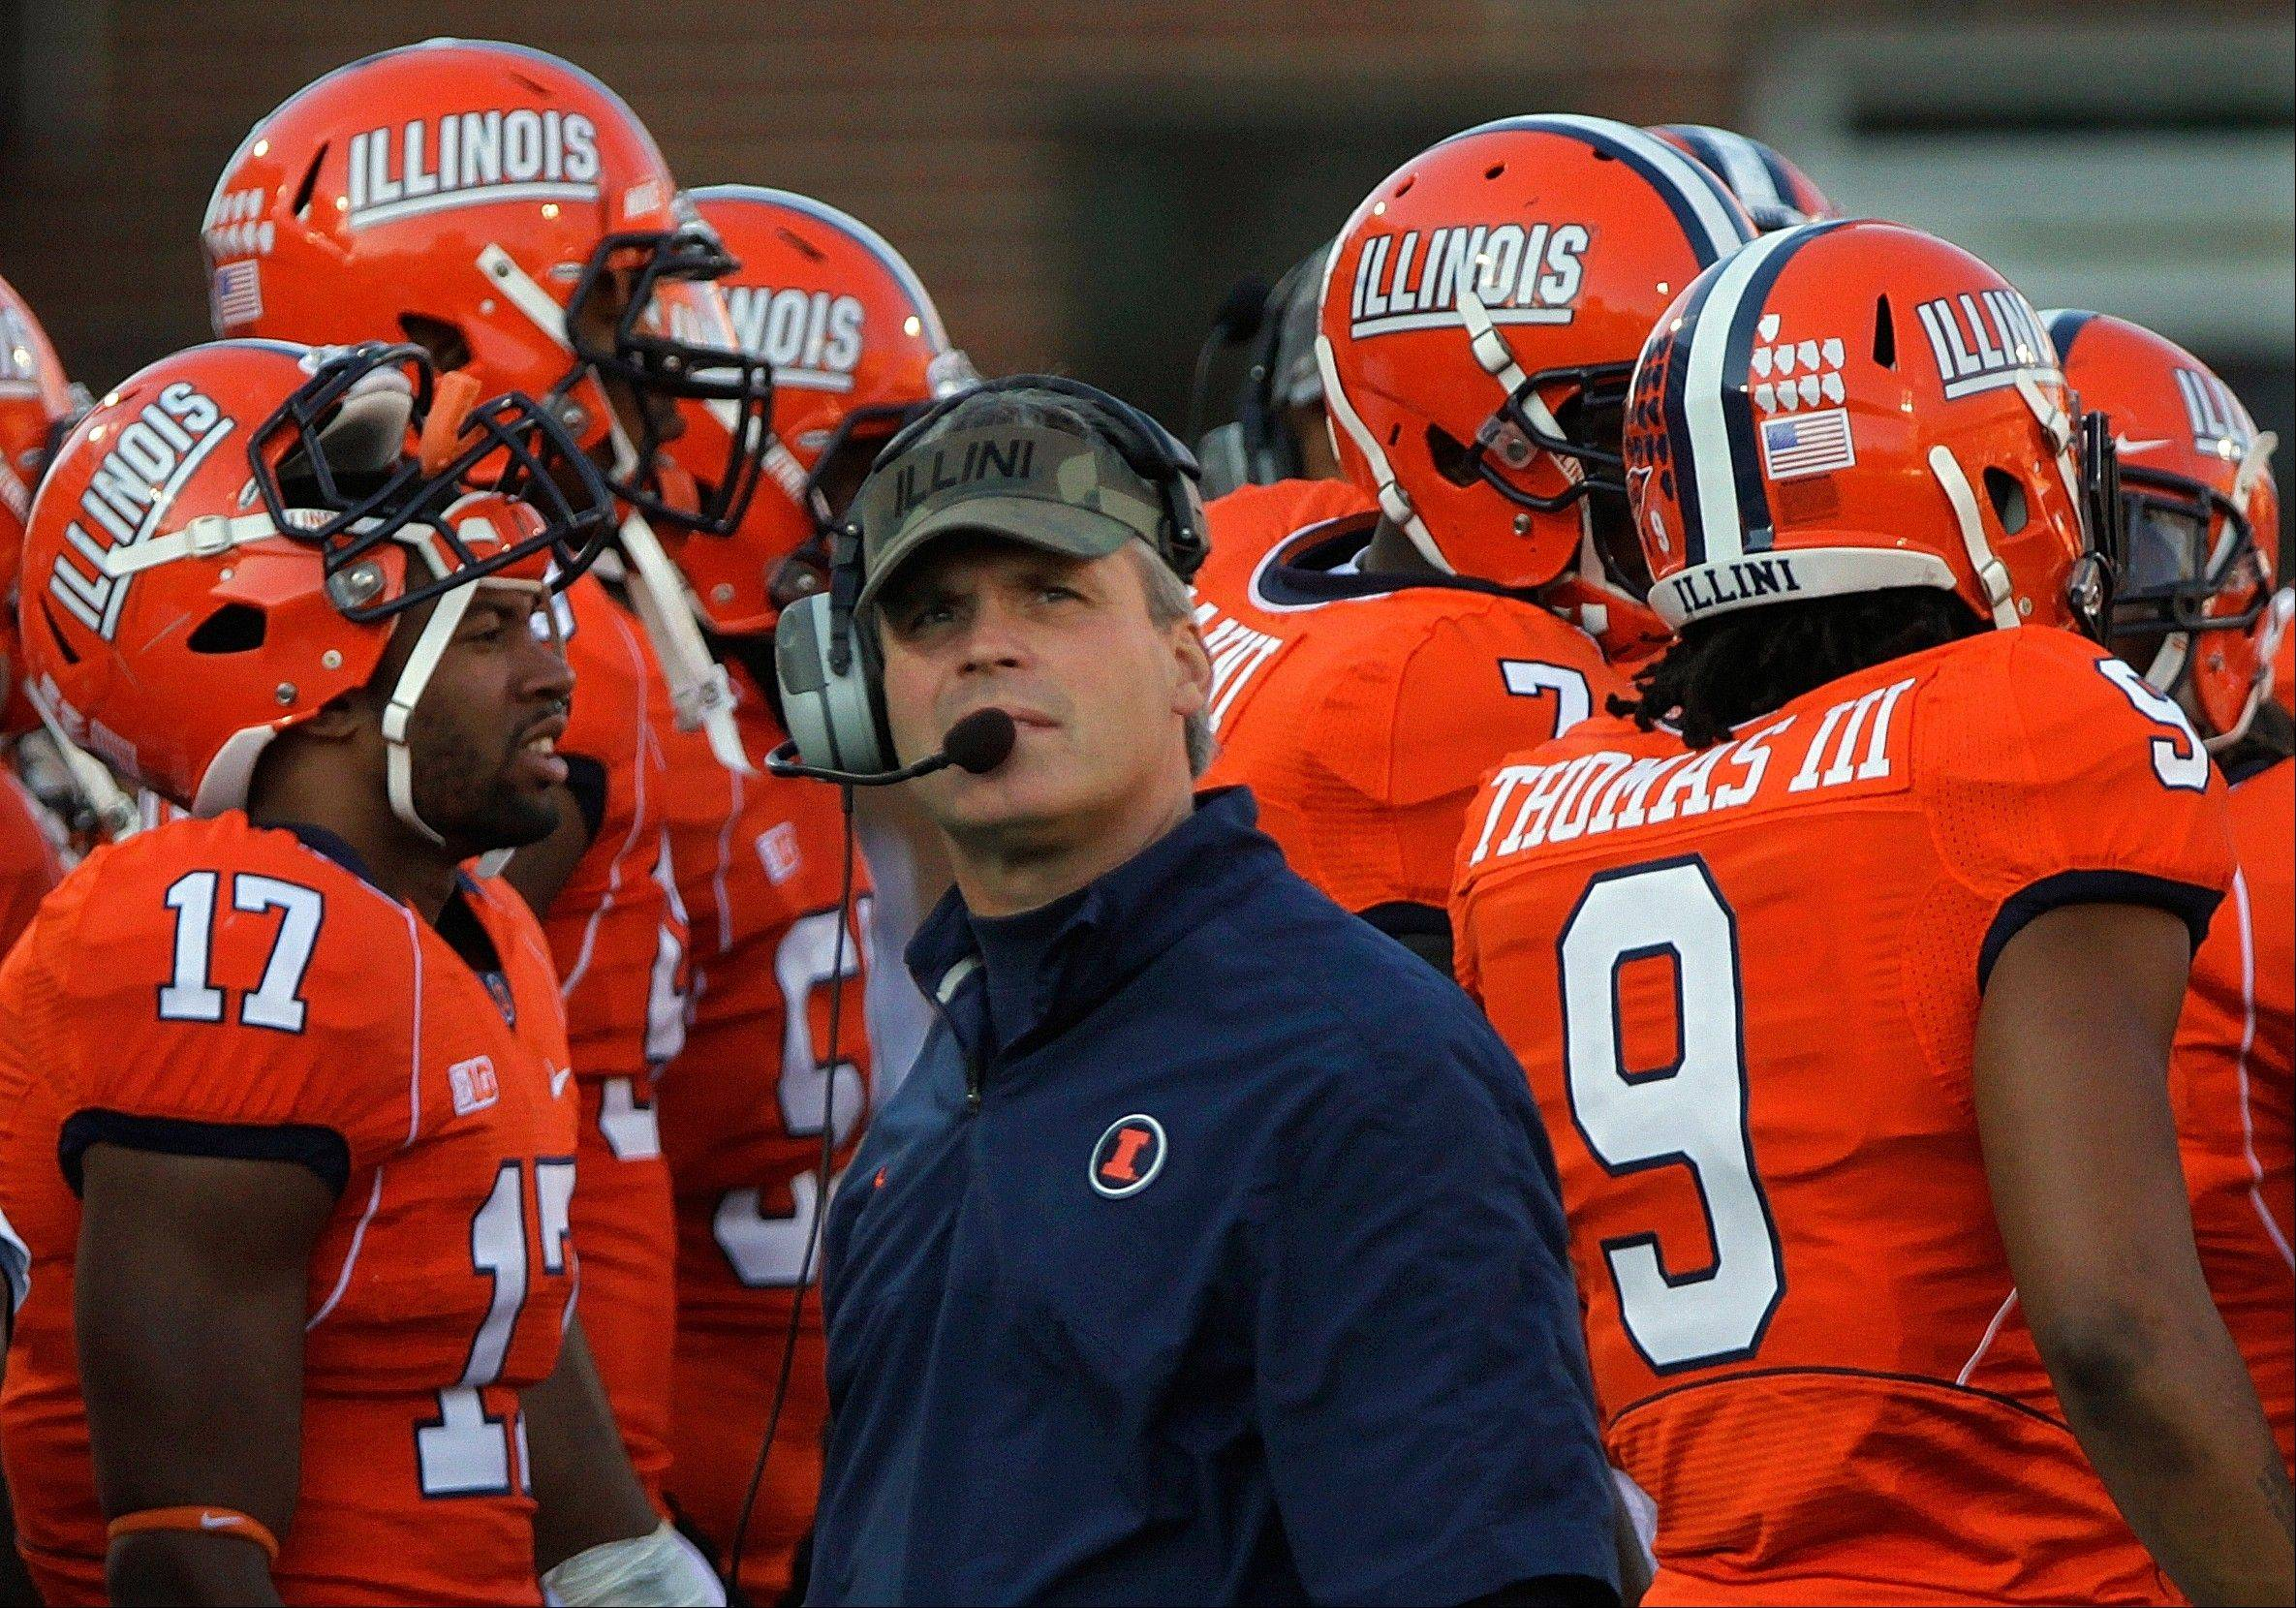 Head coach Tim Beckman and the Illini didn't win a Big Ten football game last season, Beckman's first at the helm.